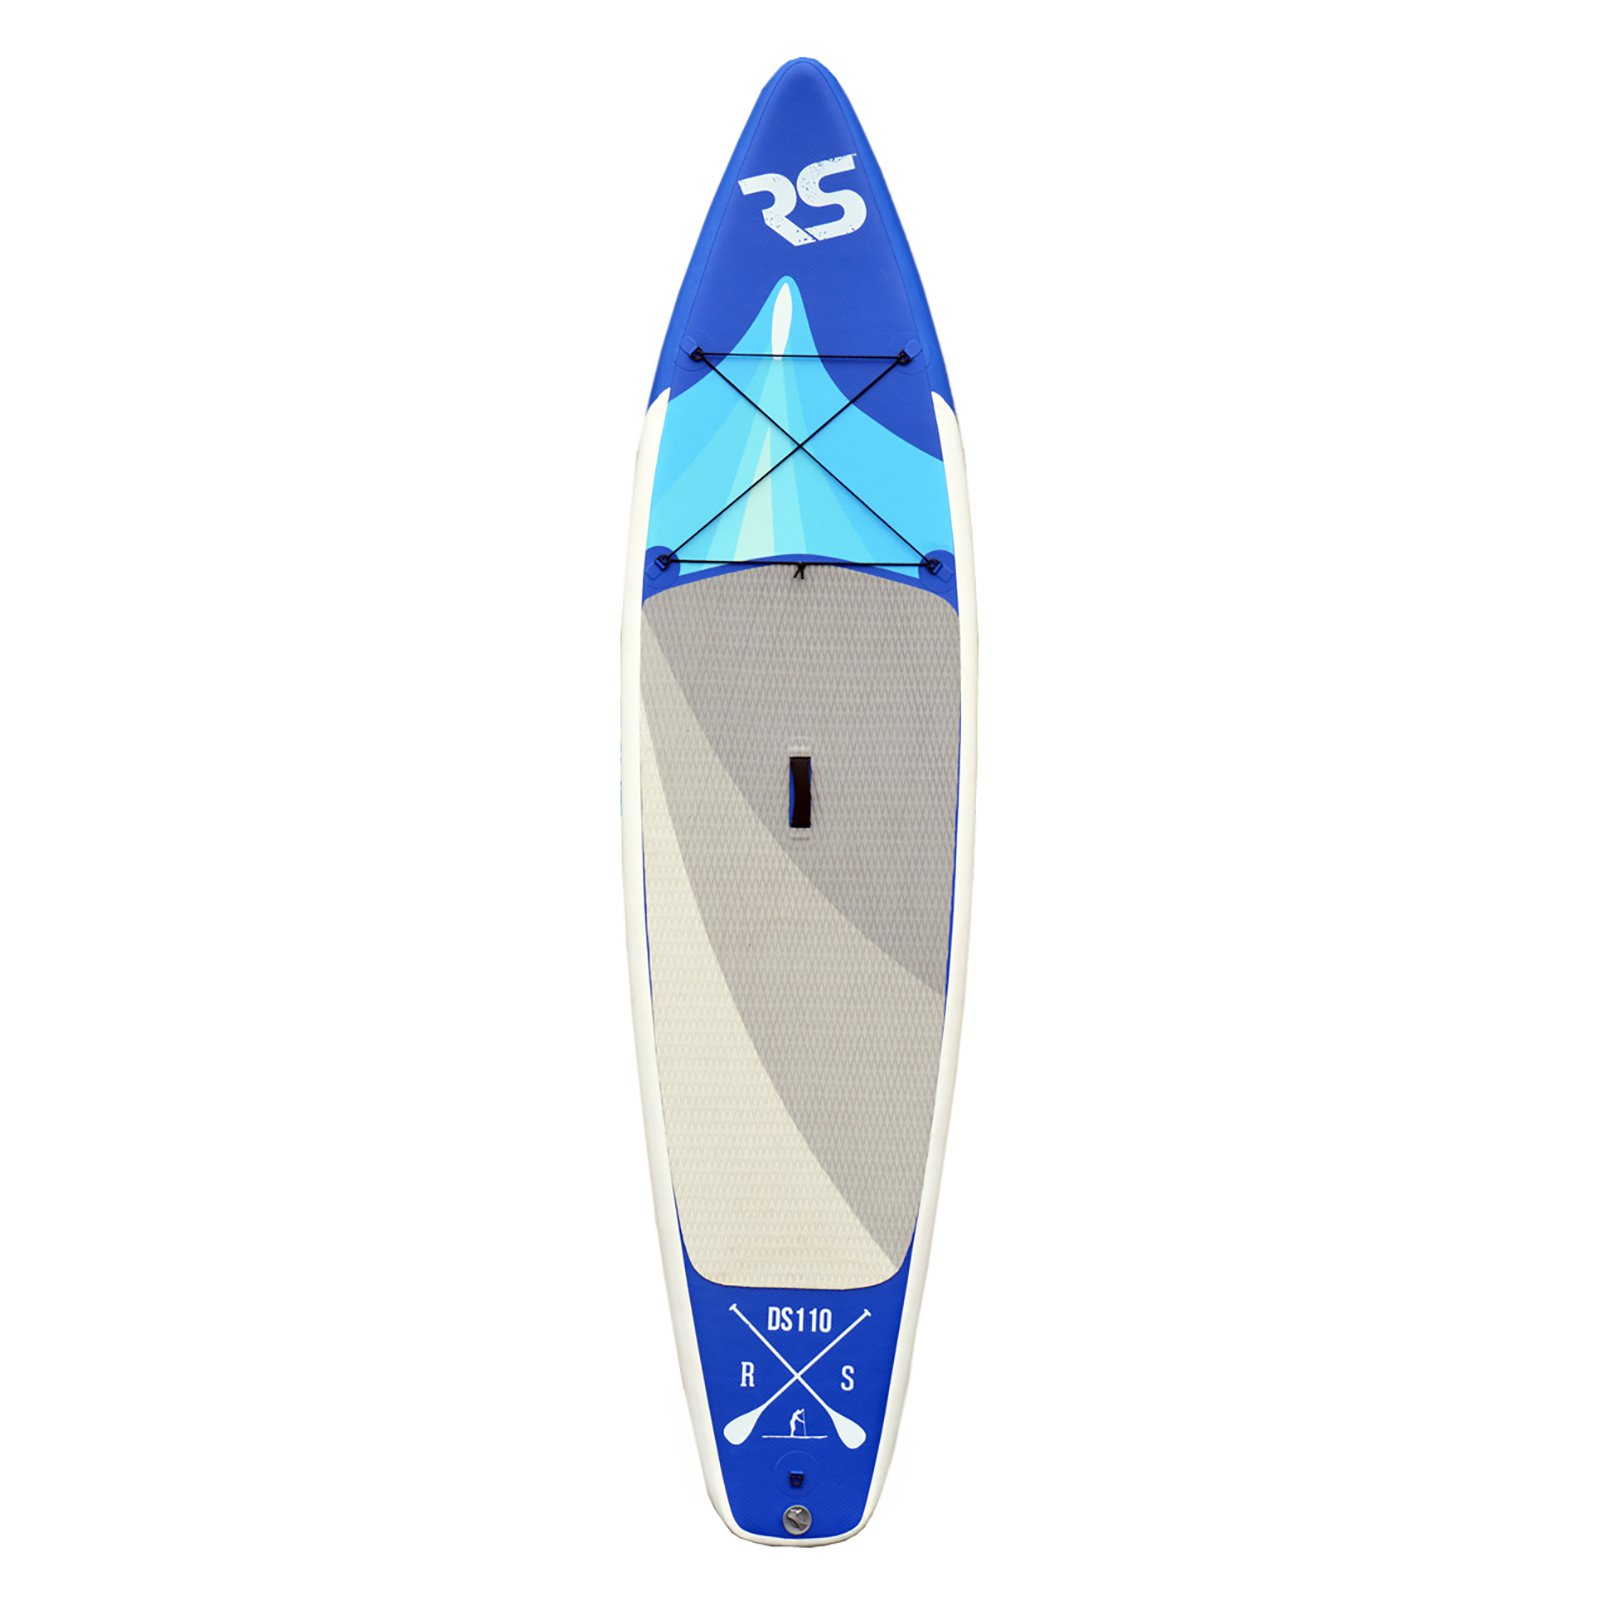 Rave Sports Nomad 6 in. Inflatable Stand Up Paddle Board